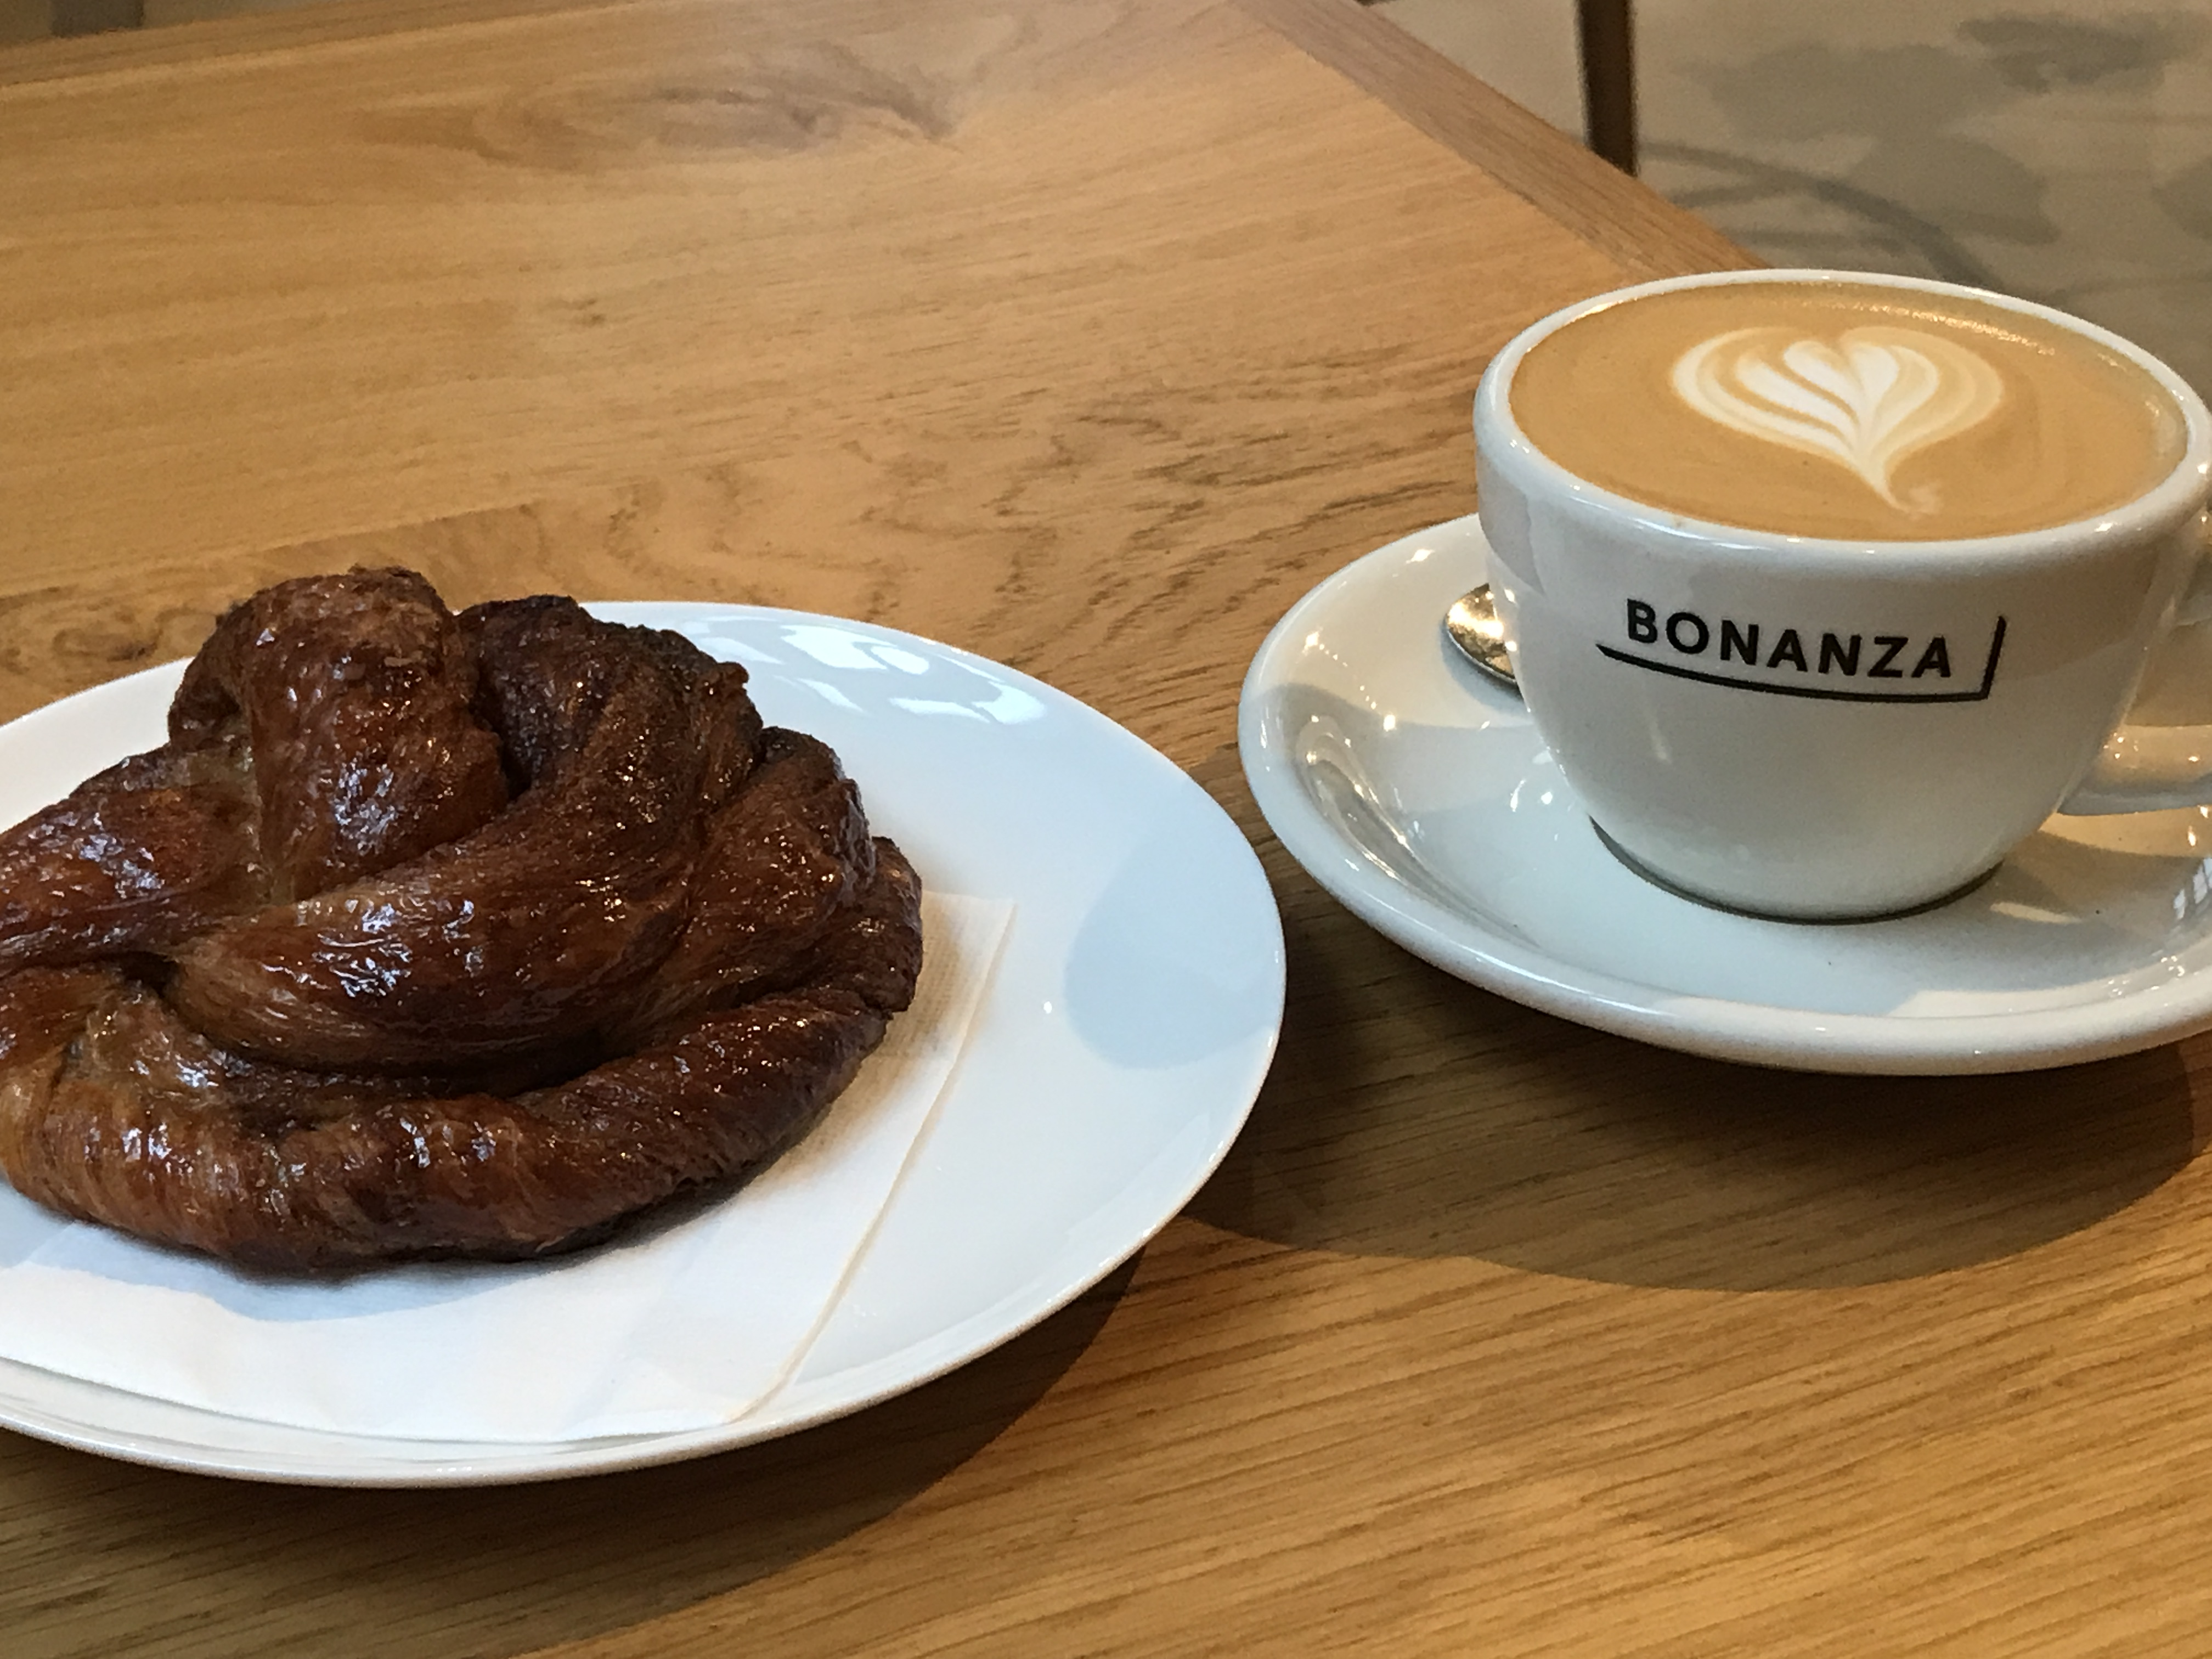 Bonanza flat white and pastry that looks like poo, but tasted like awesome.